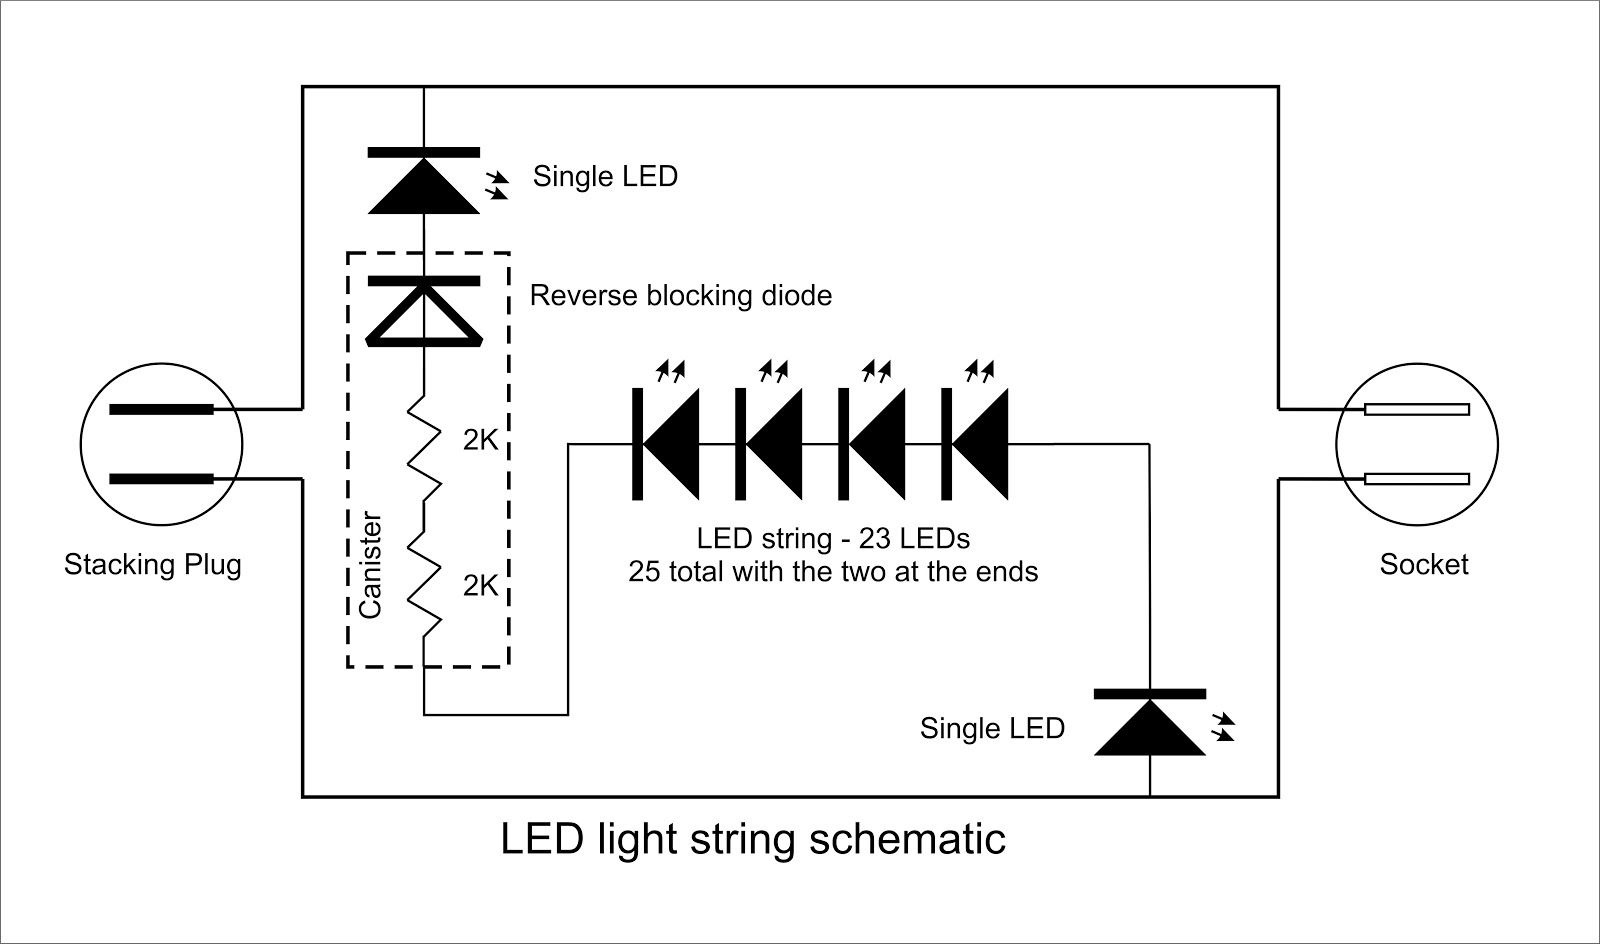 lights wiring diagram on christmas lights low voltage wiring diagram rh init org uk heat pump